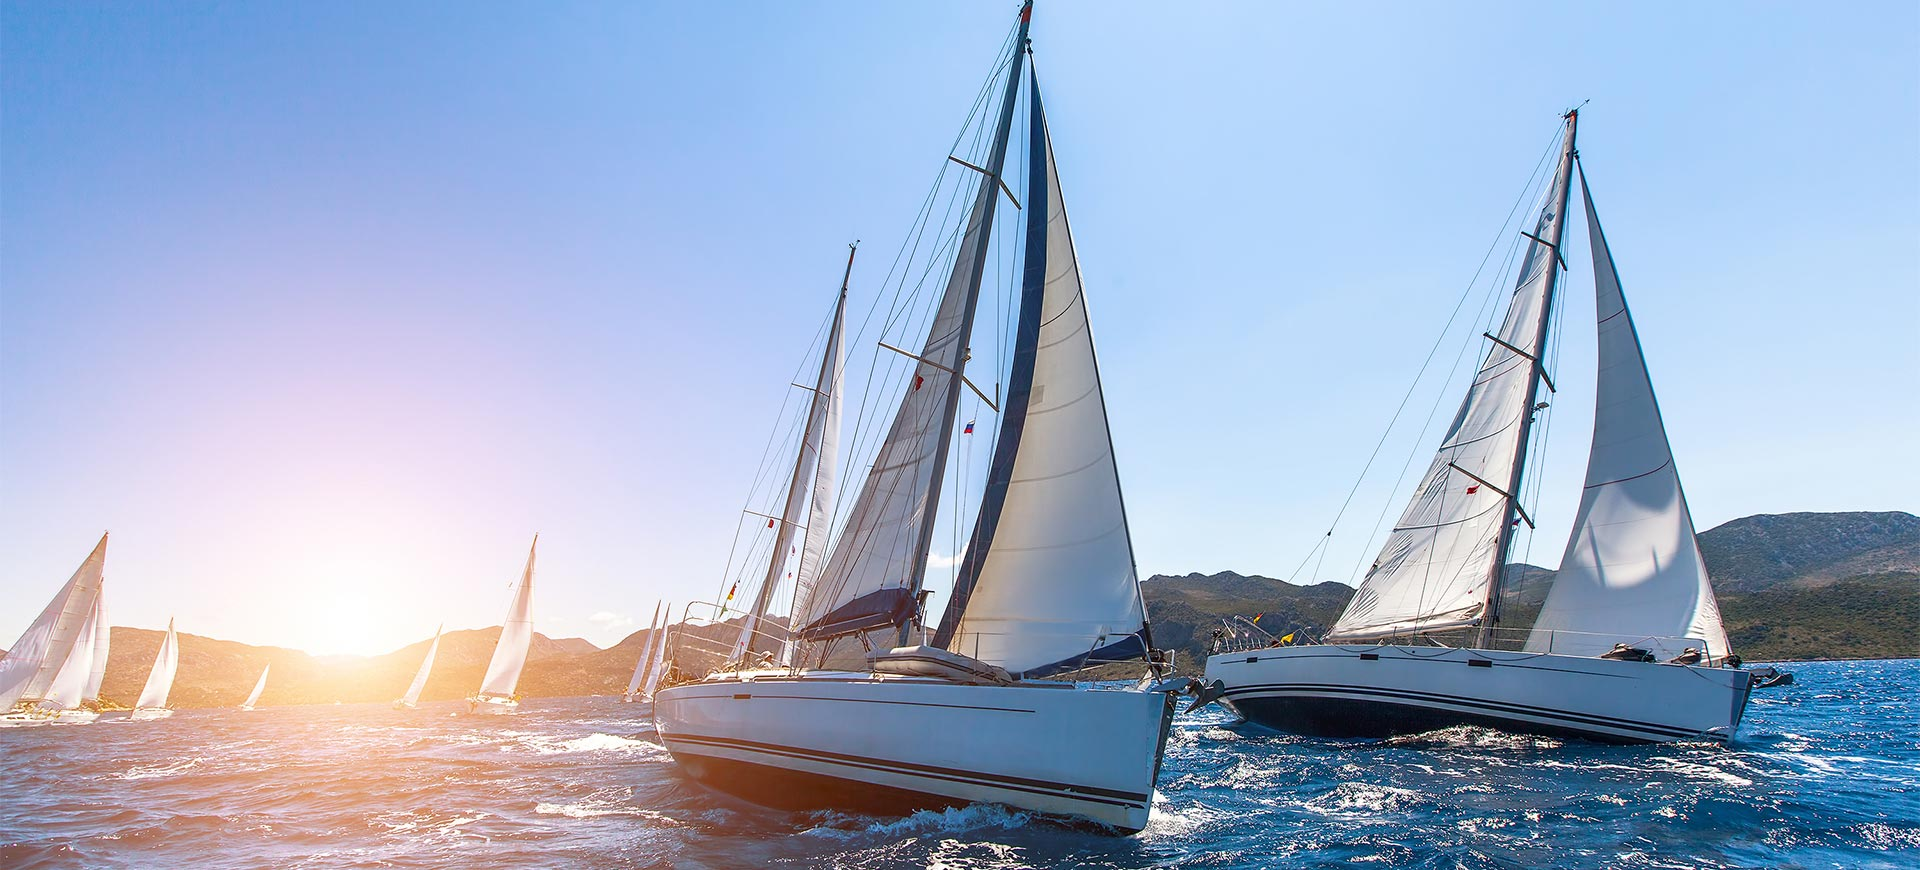 Noa Yachting cleaning standards